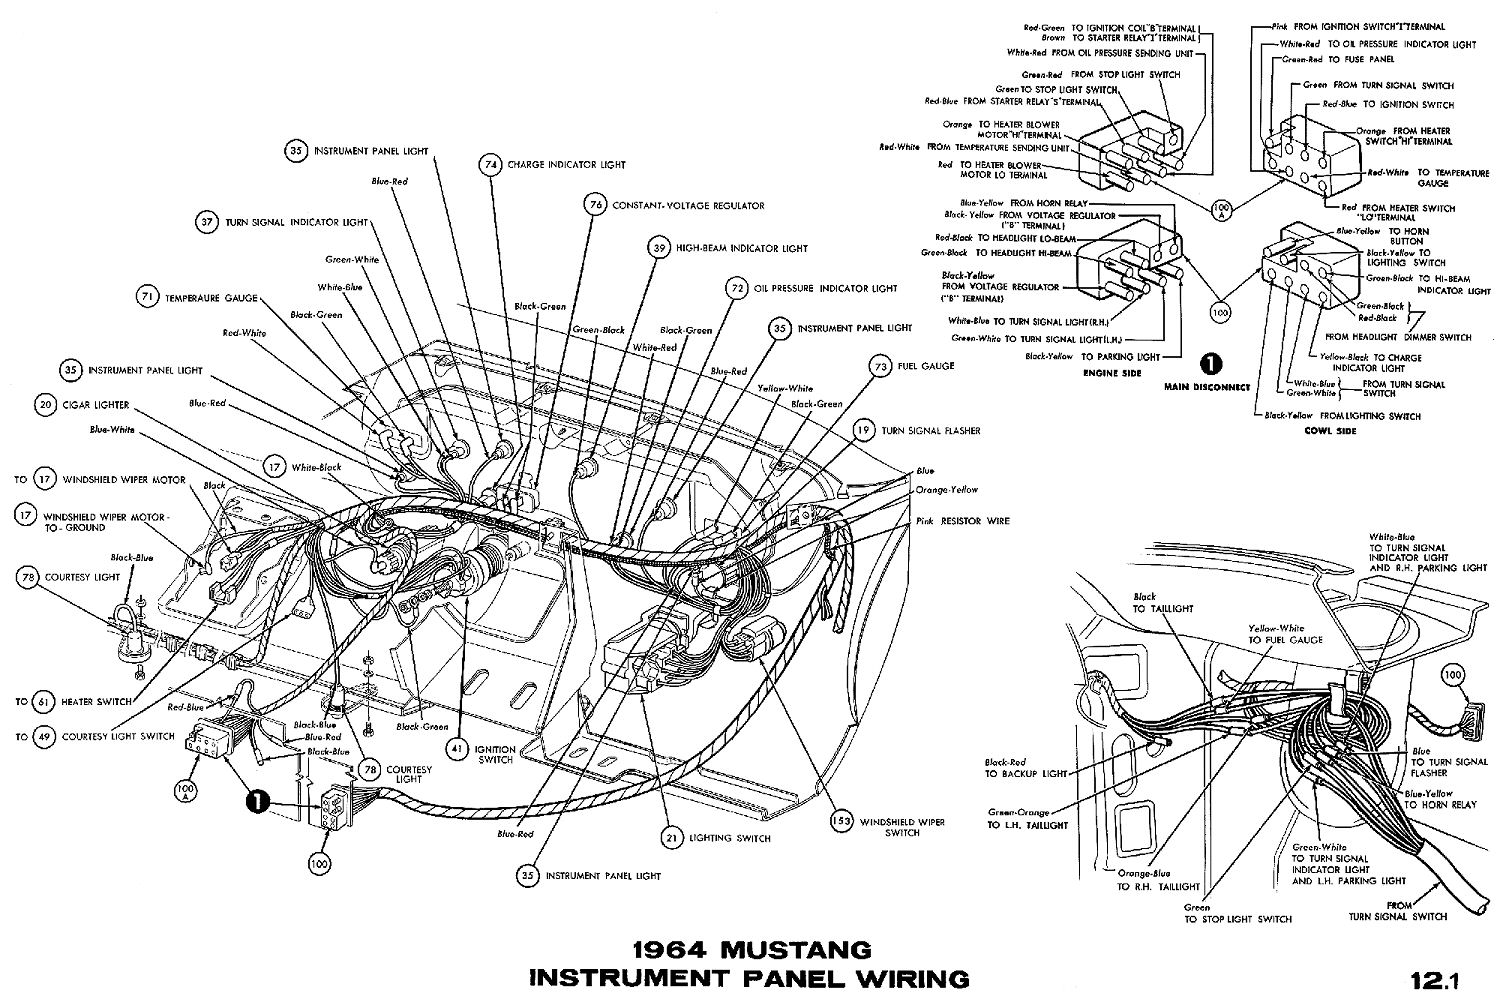 1964 Mustang Wiring Diagrams Average Joe Restoration Peugeot 206 Fuse Box Heater Instrument Cluster Connections